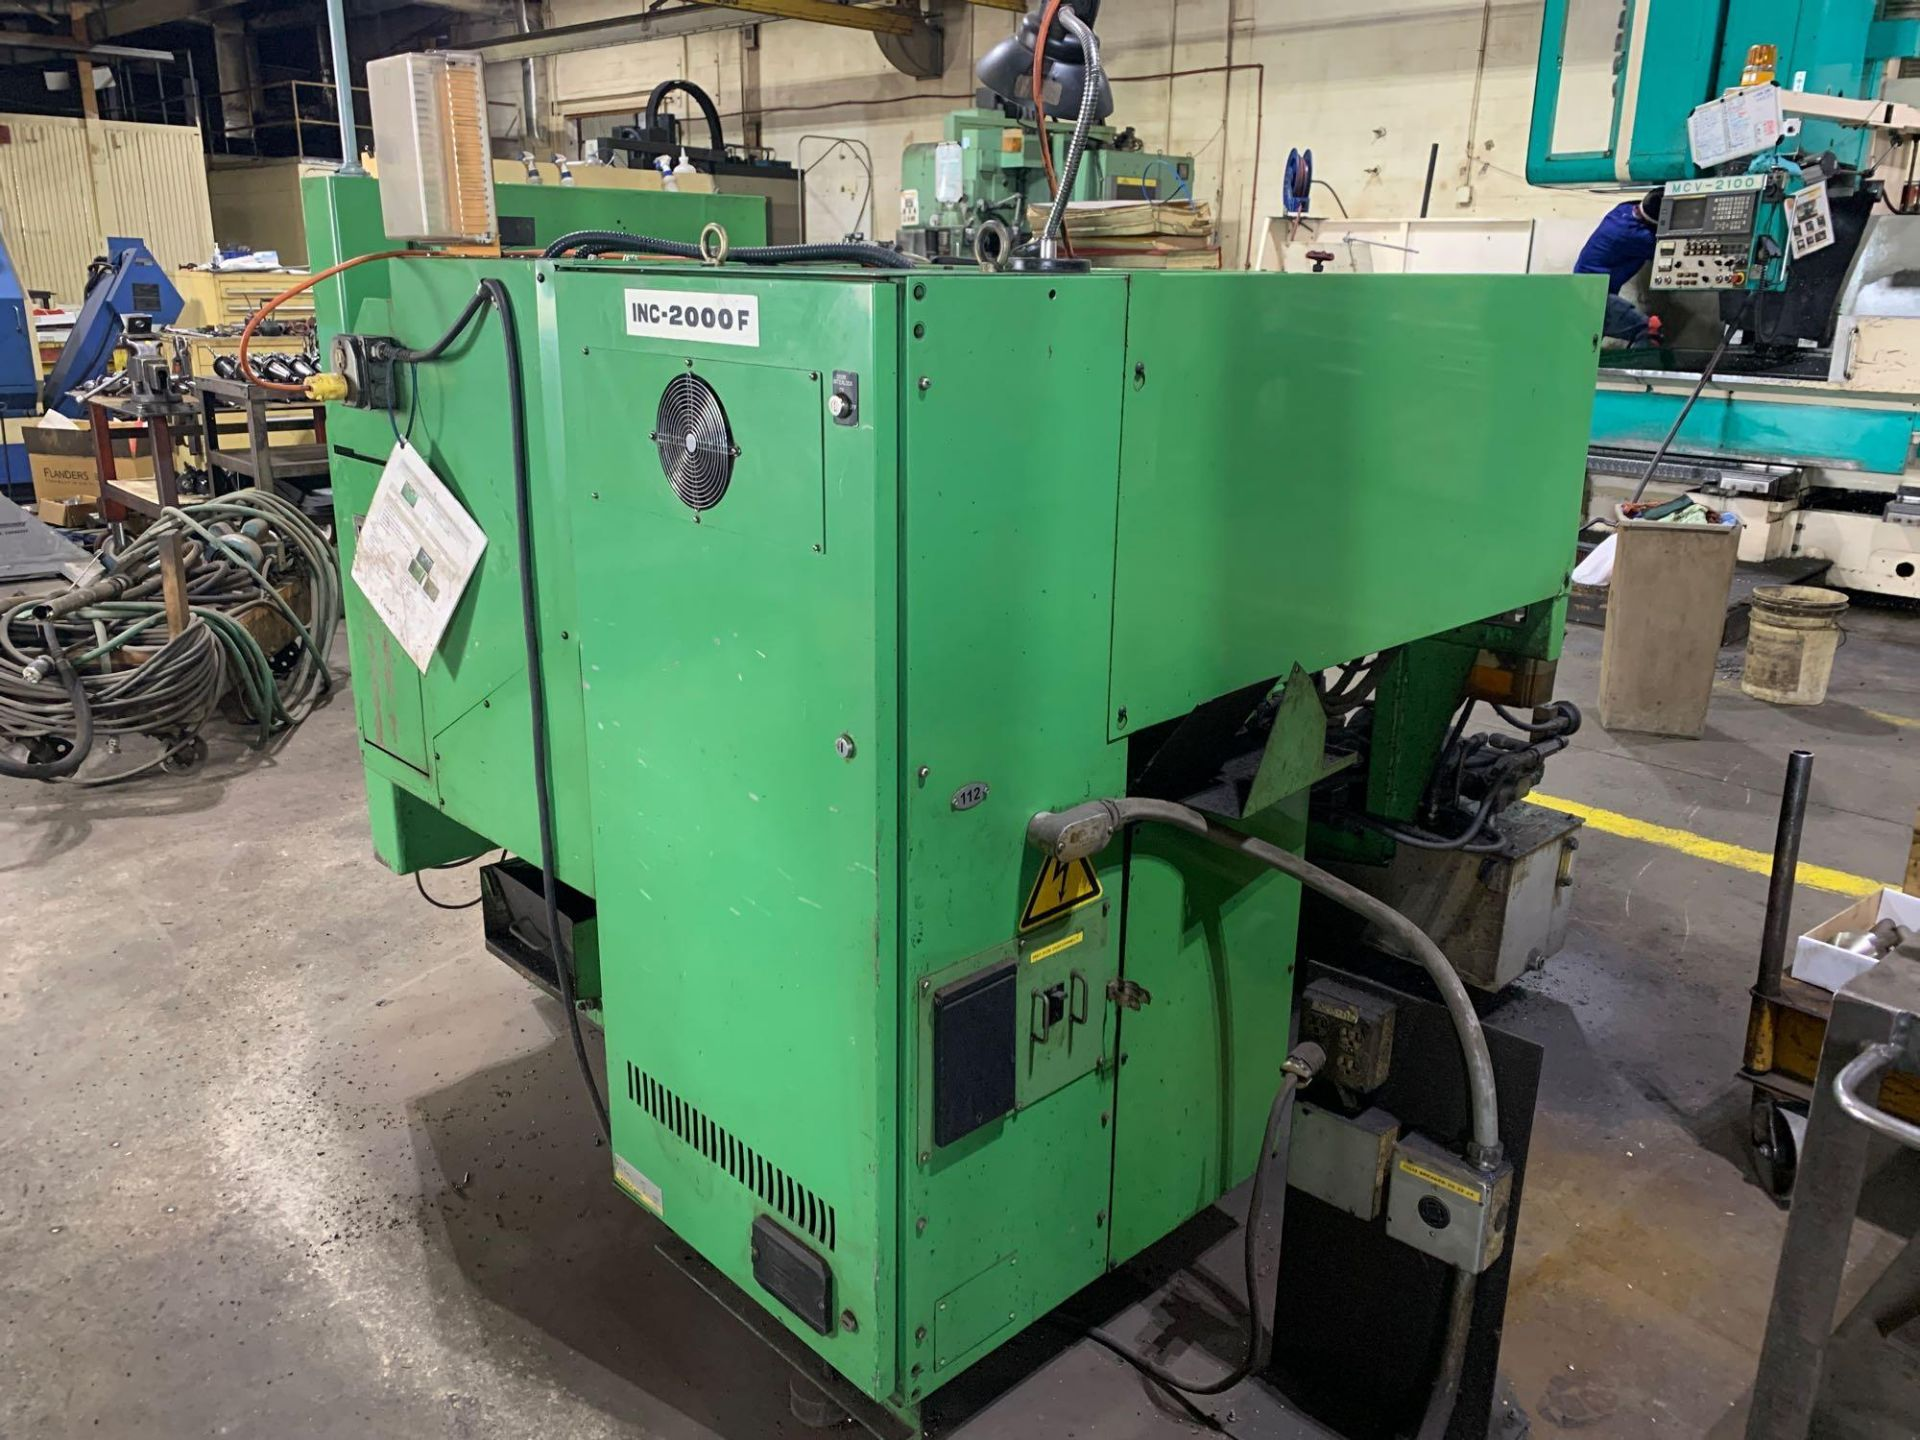 IKEGAI AX-15Z CNC Slant Bed Turning Center Serial Number: 50130V 2-Axis Machine Fanuc 10T Control 12 - Image 6 of 18